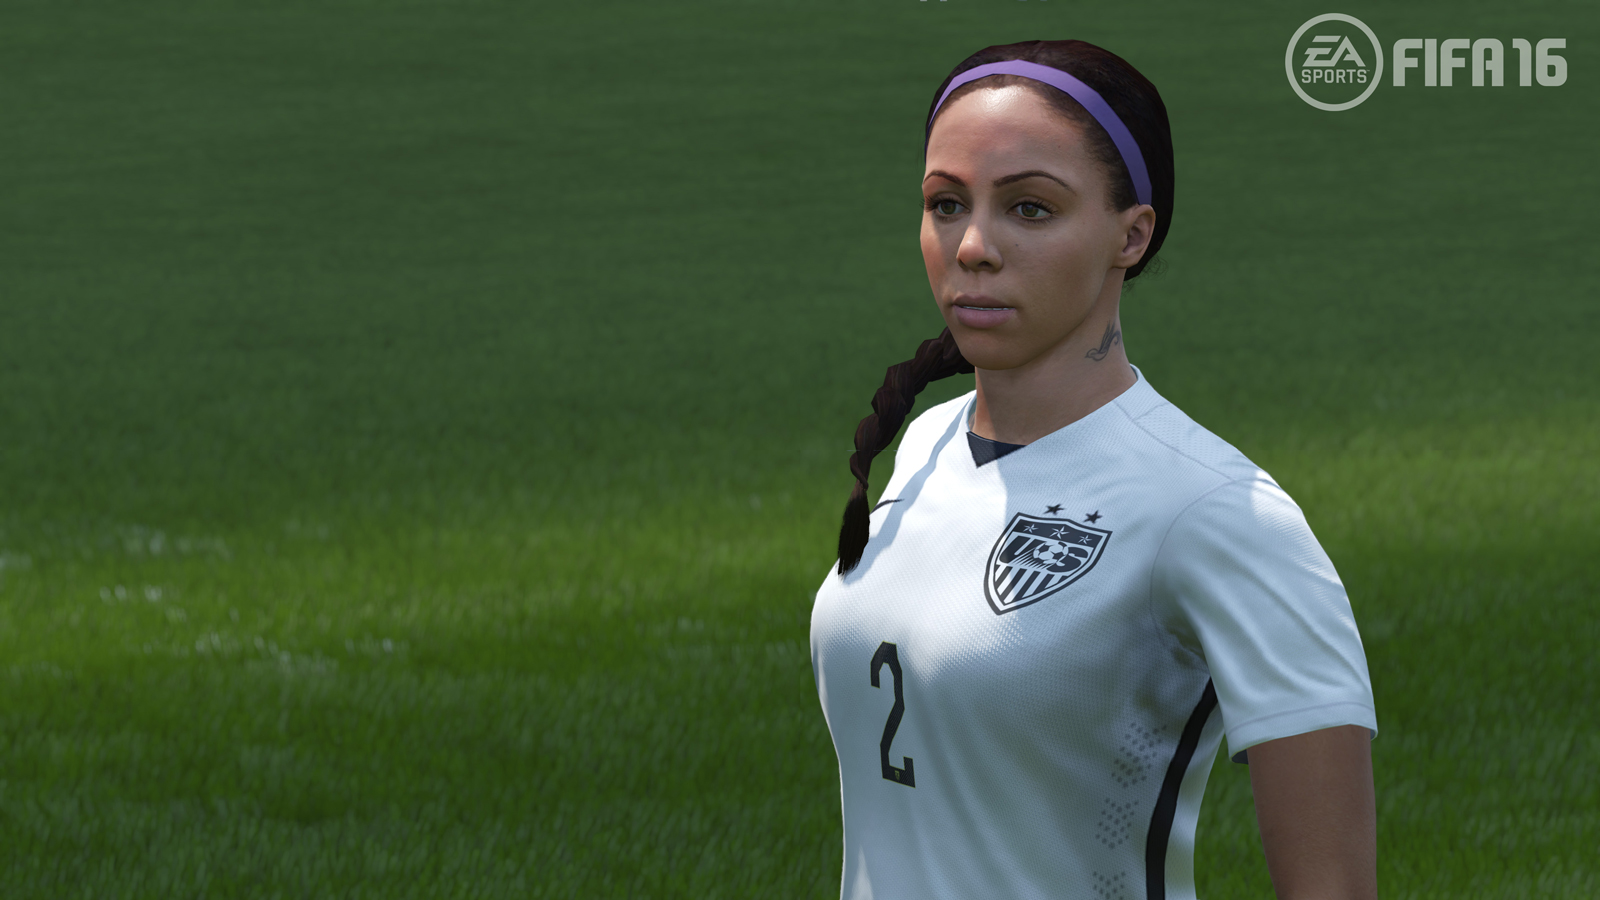 FIFA16_XboxOne_PS4_Women_Leroux_LR